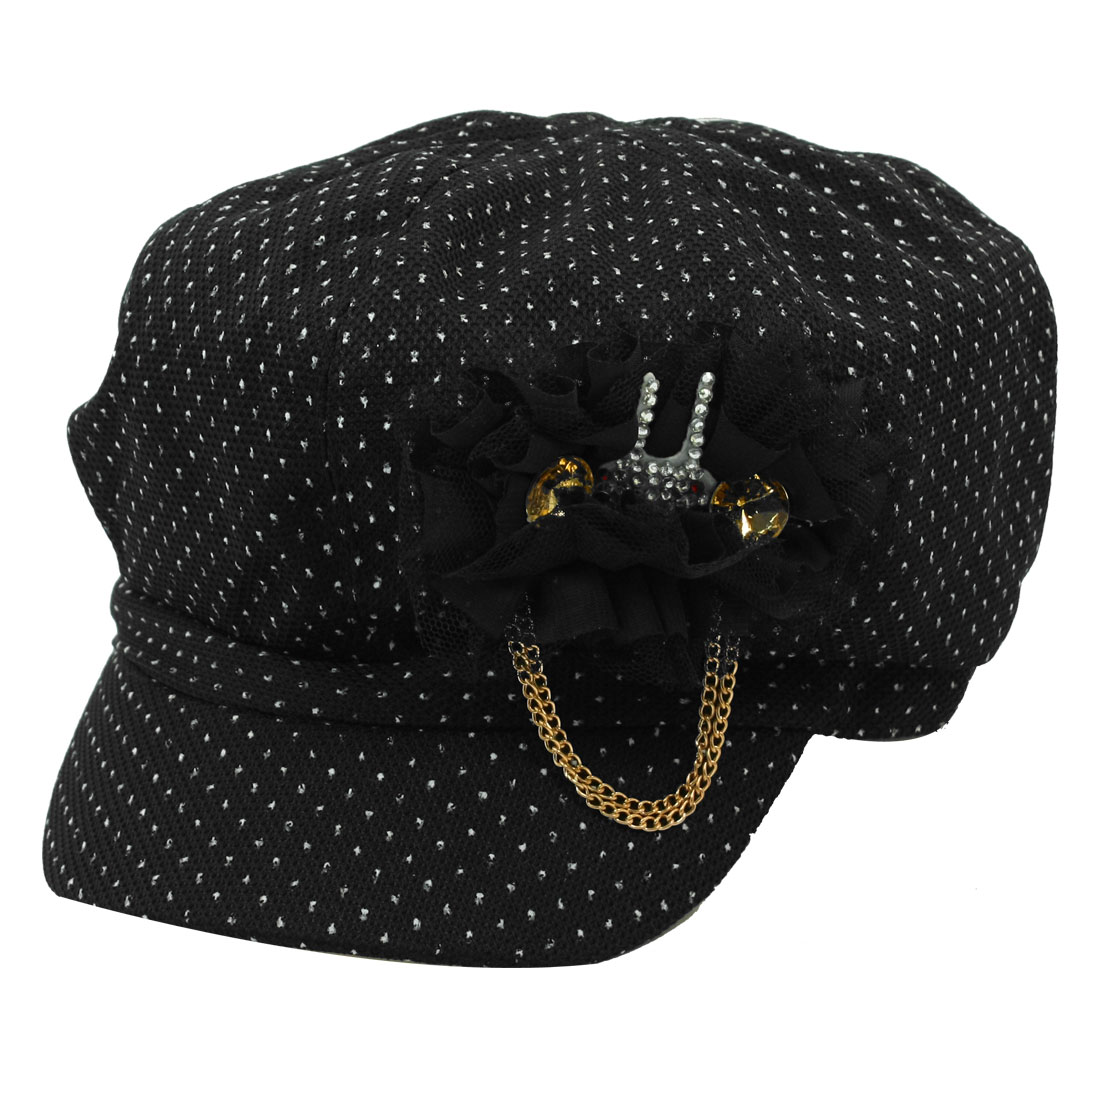 Ladies Dots Embellished Textured Casual Cap Casquette Hat Black Size L